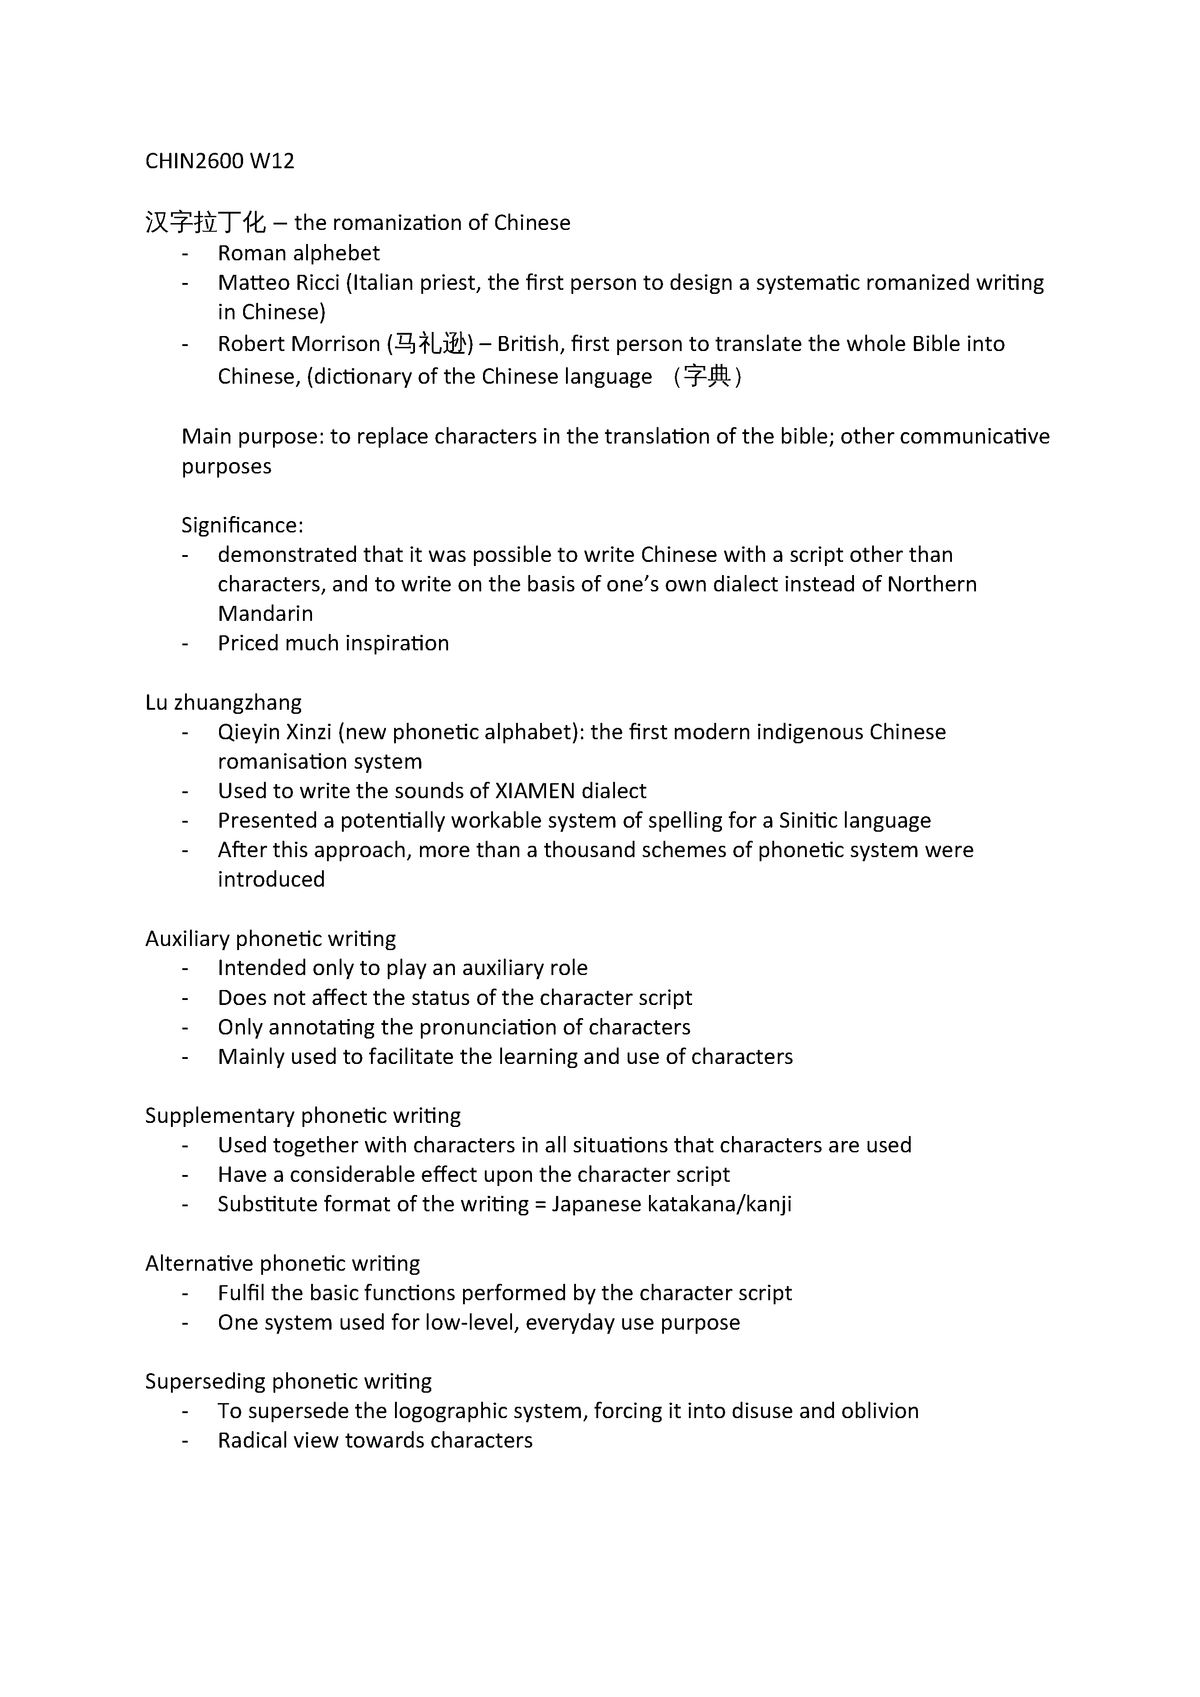 Lecture notes, lecture Week 12 - Topic - 汉字拉丁化